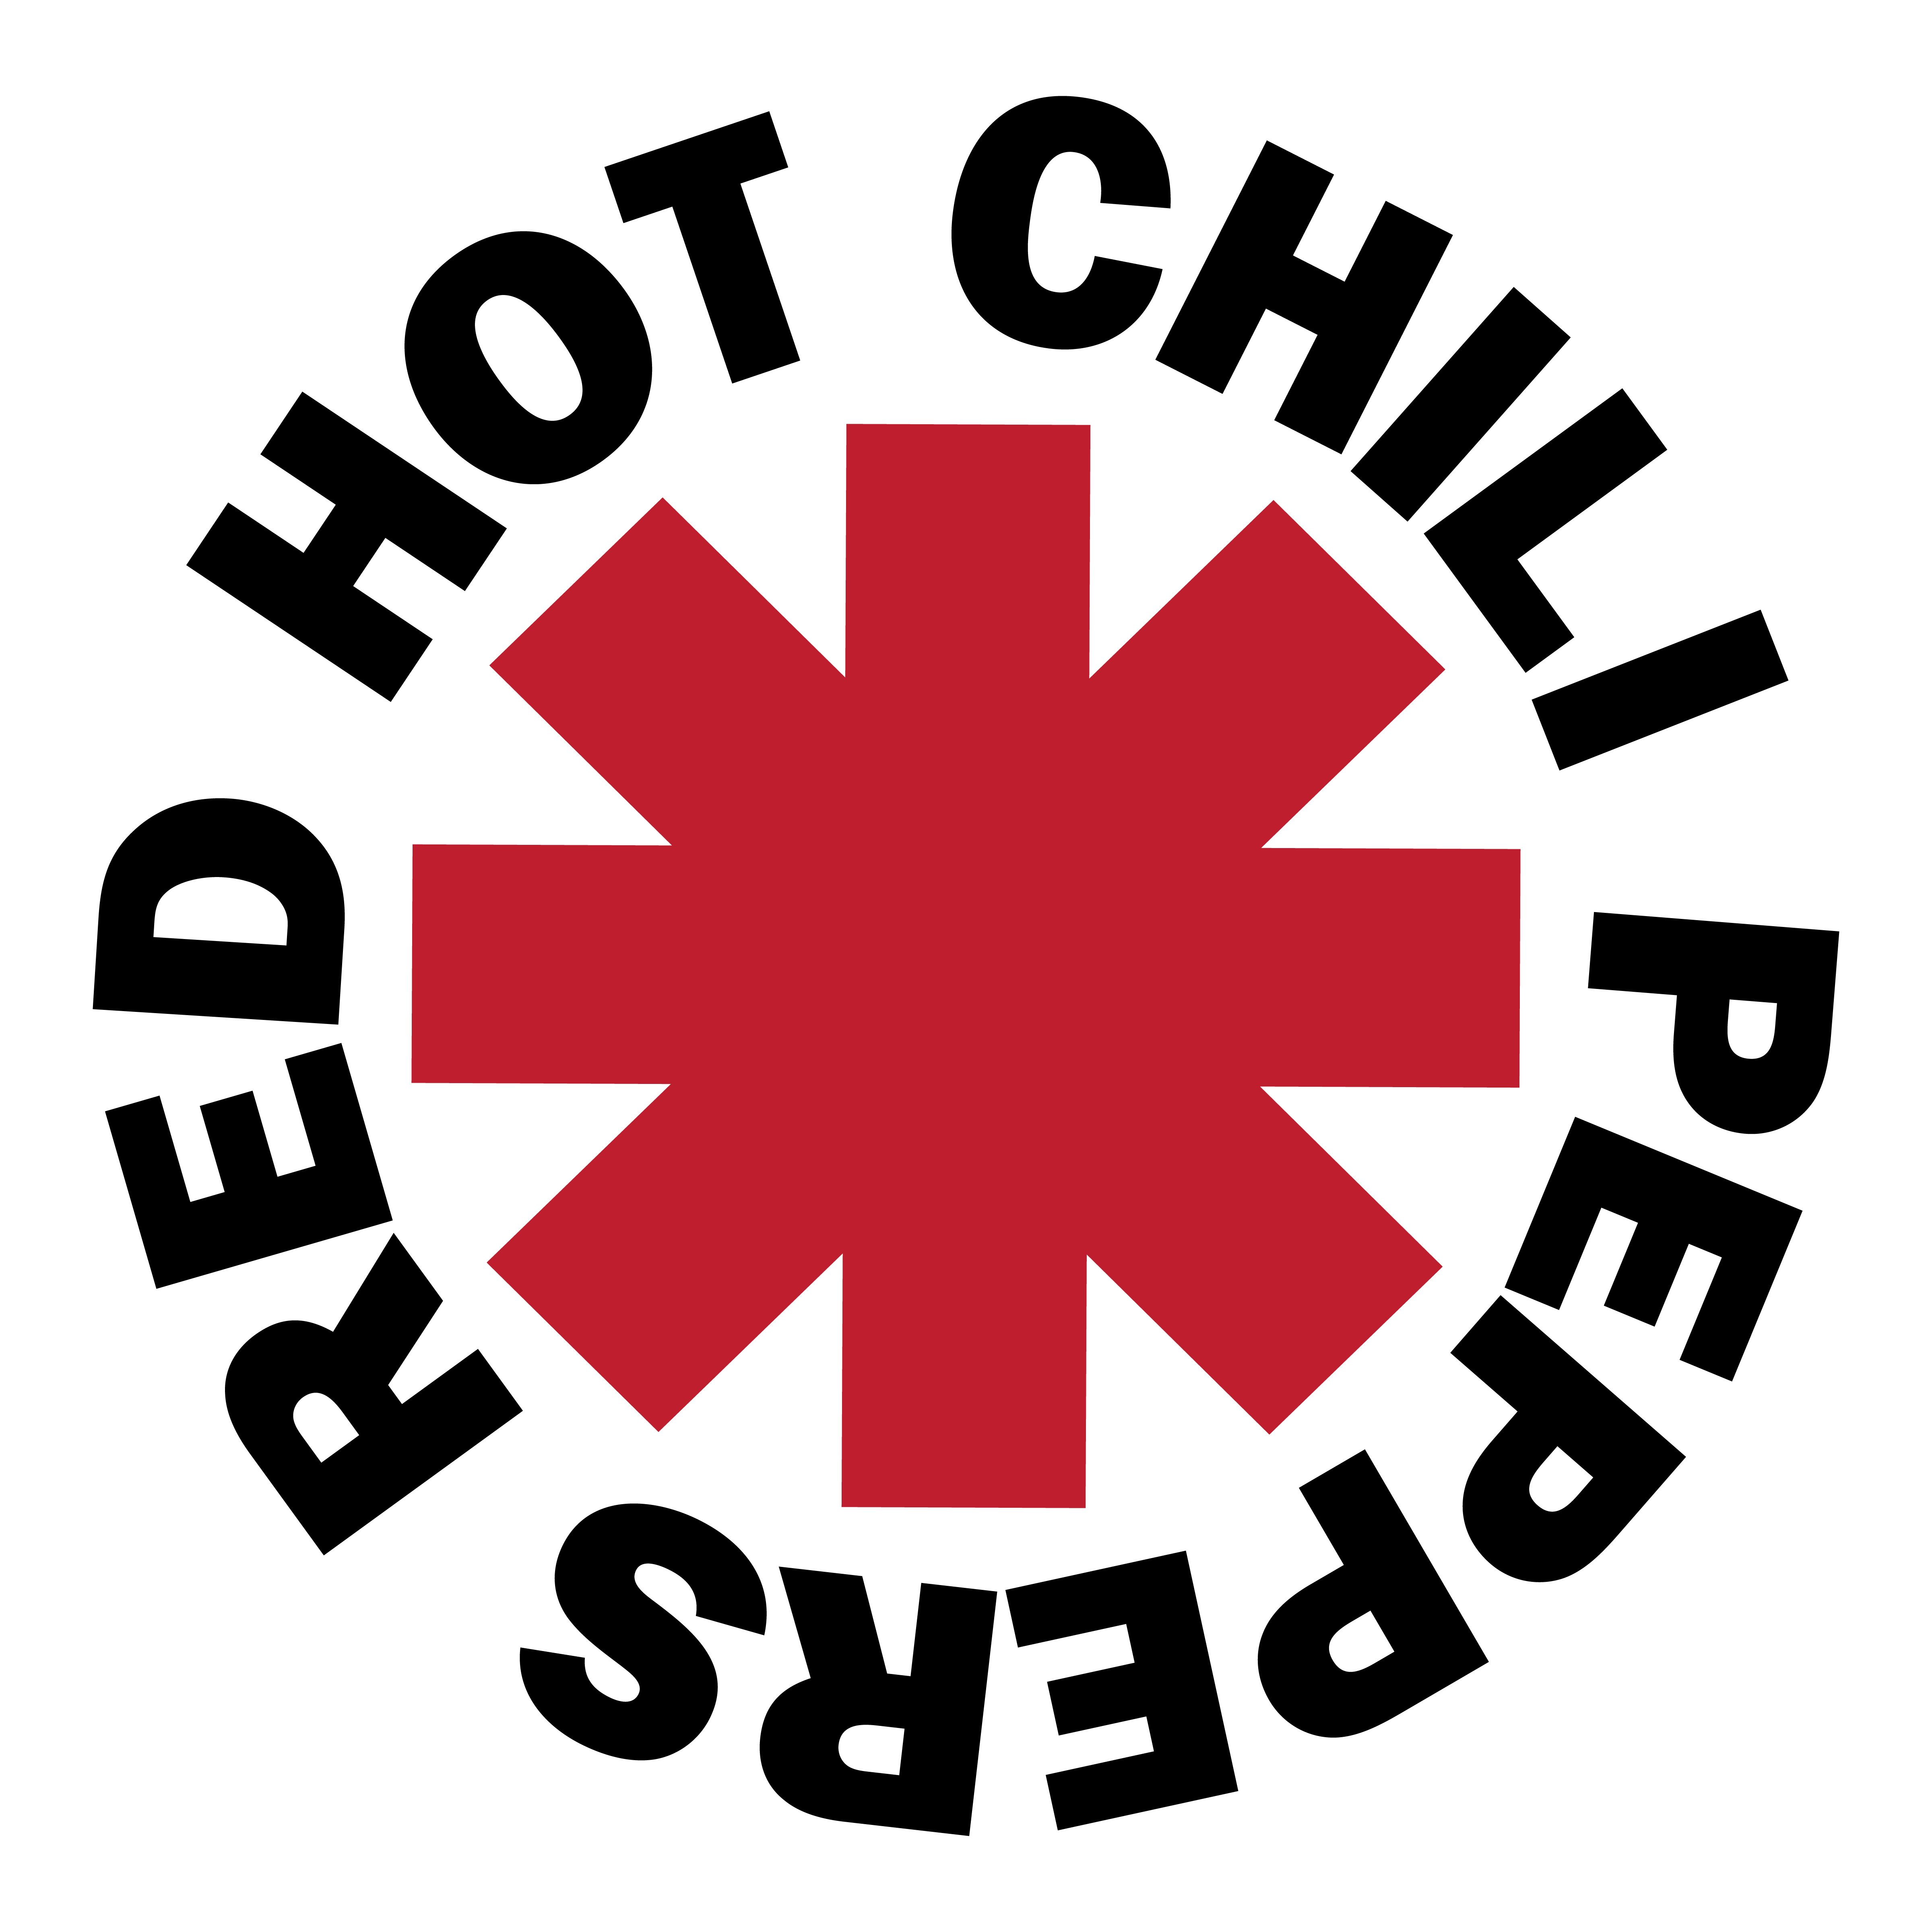 red hot chili peppers - photo #23